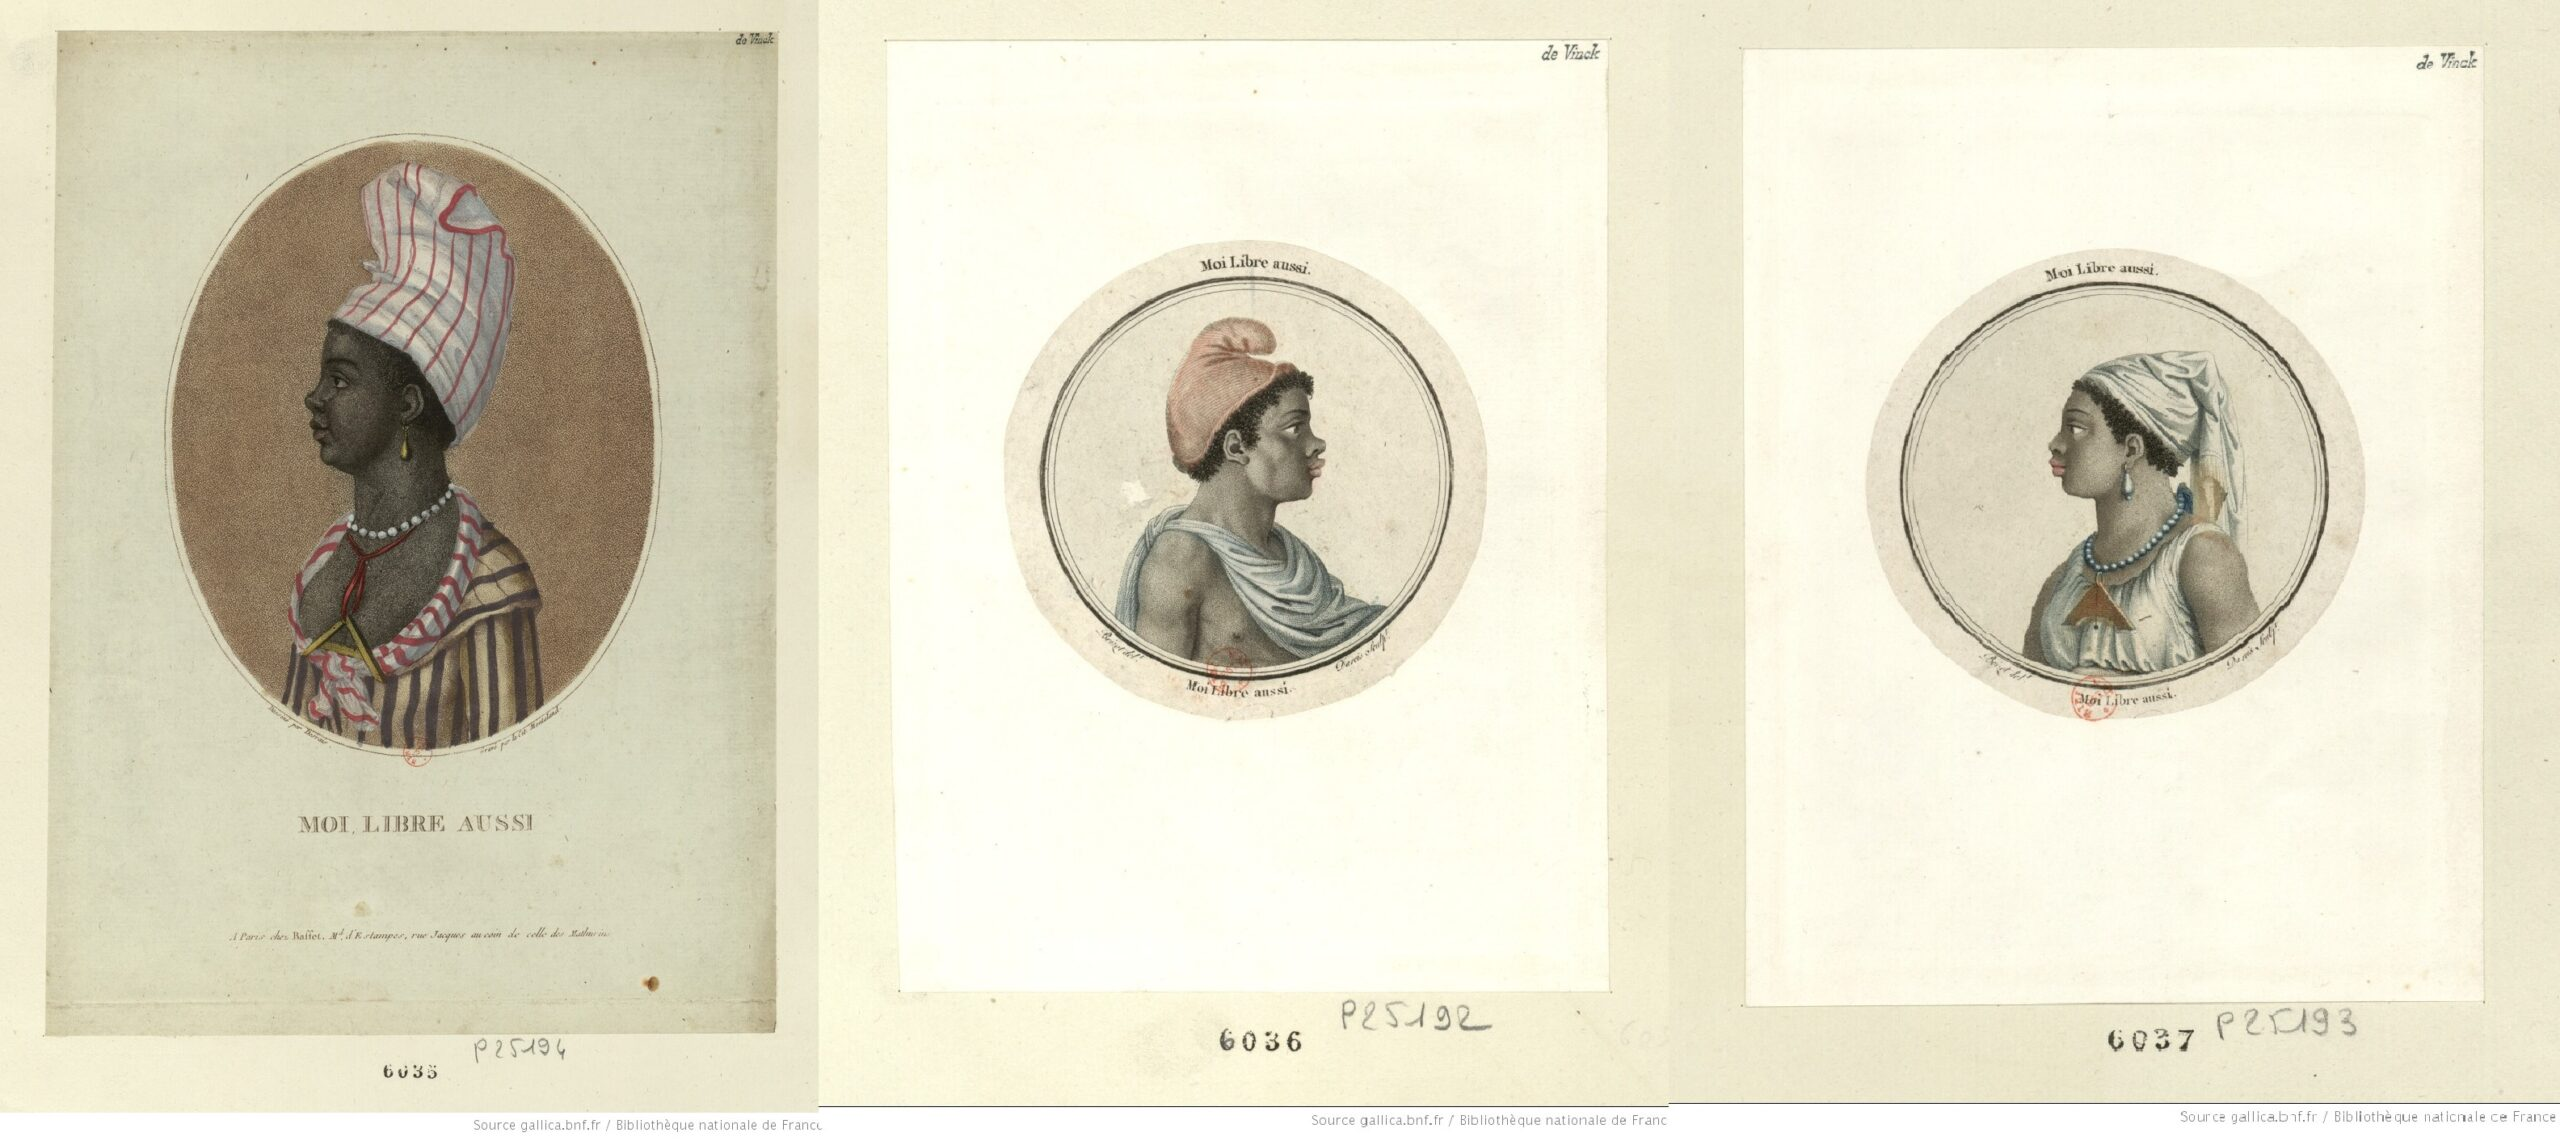 Three portraits of black people in late eighteenth-century dress with the caption 'Moi, Libre Aussi'.